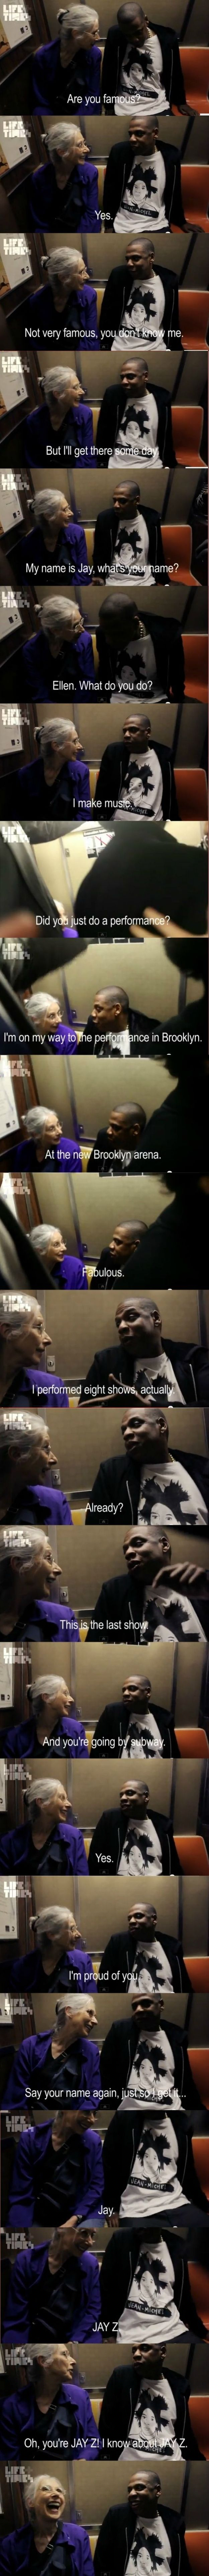 In October, Jay-Z rode the R train to his last performance at the Barclays Center and this happened. So cute.